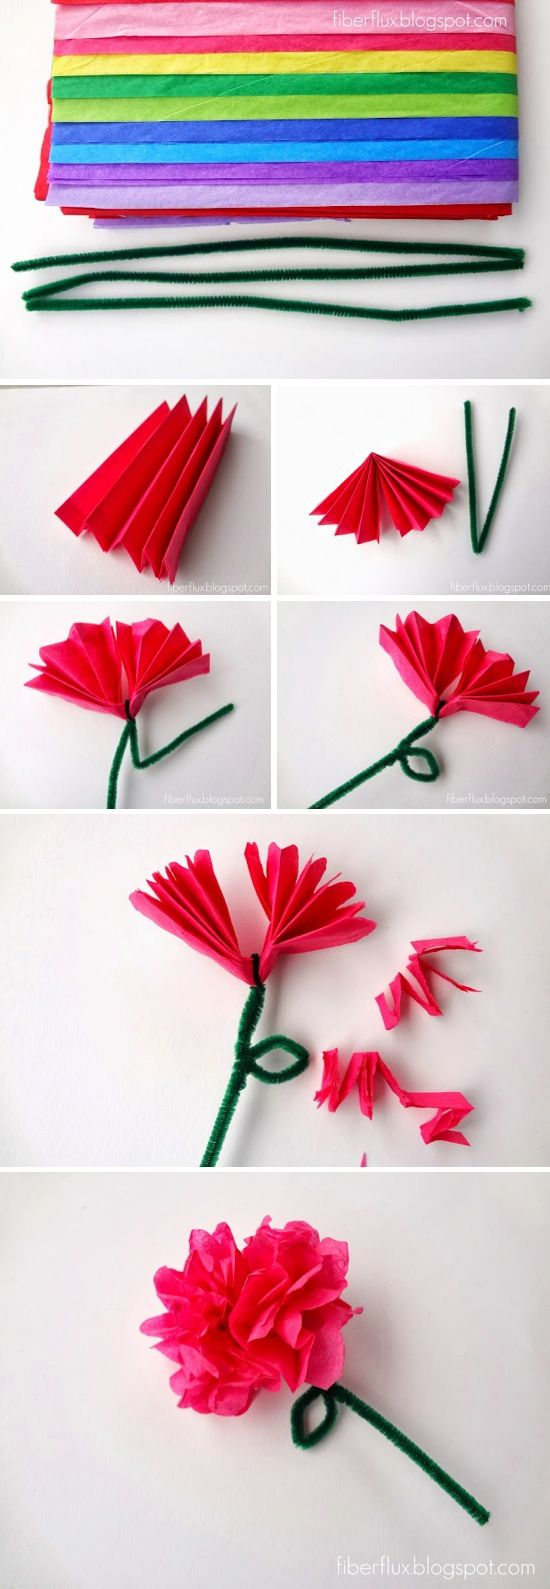 25 best ideas about paper flowers craft on pinterest for Decorative flowers for crafts